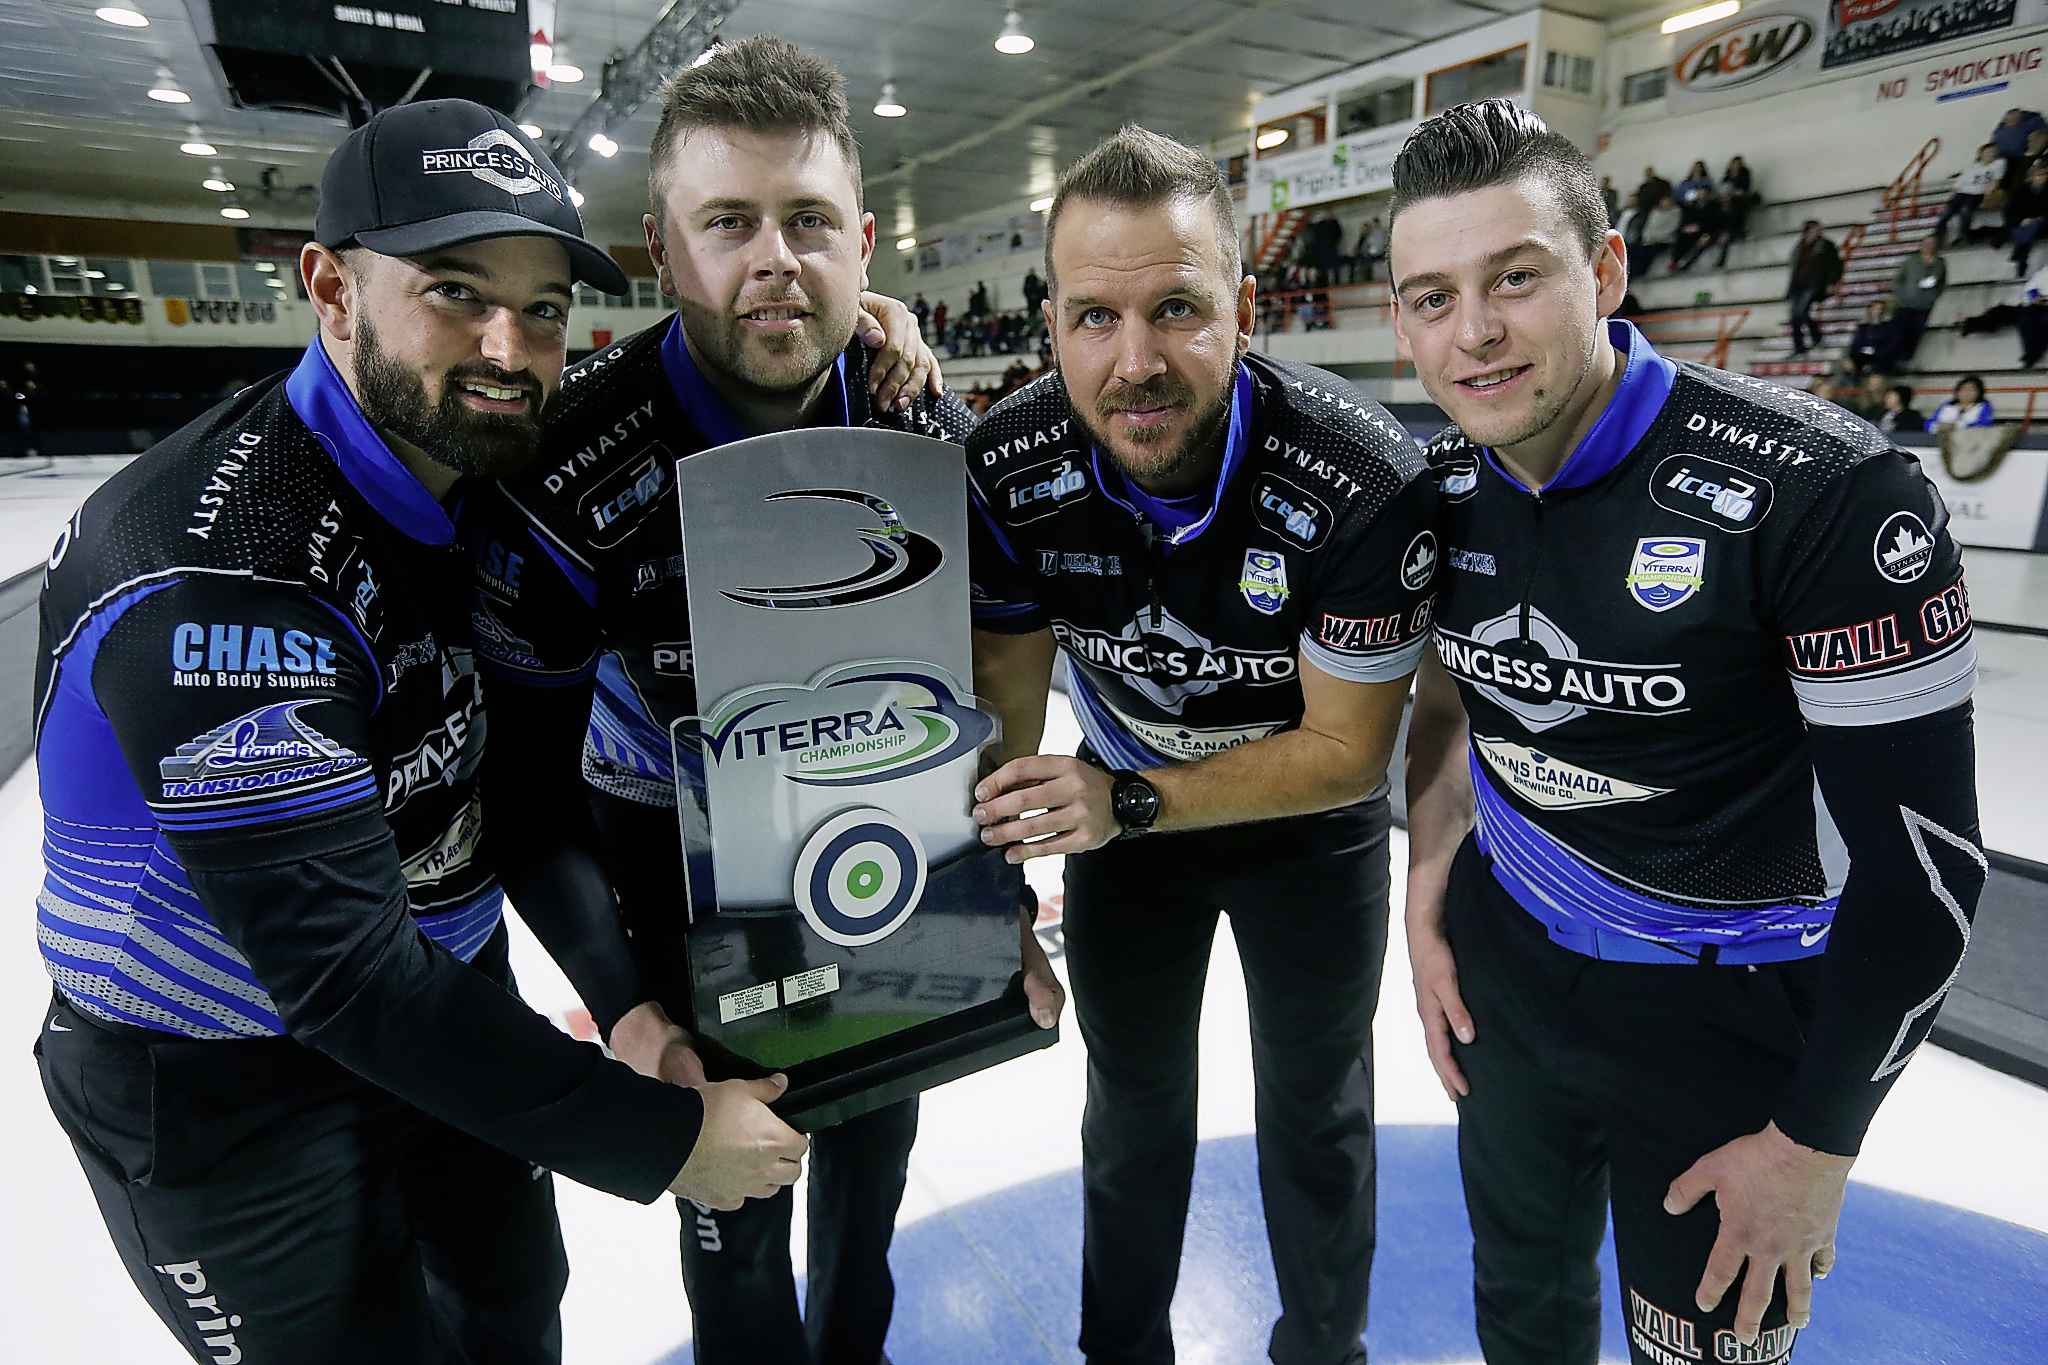 JOHN WOODS / WINNIPEG FREE PRESS FILES <p />  Reid Carruthers and his team Braeden Moskowy, Derek Samagalski and Colin Hodgson celebrate after defeating Mike McEwen in the Manitoba men's curling championship in Winkler Sunday, Feb. 4, 2018.